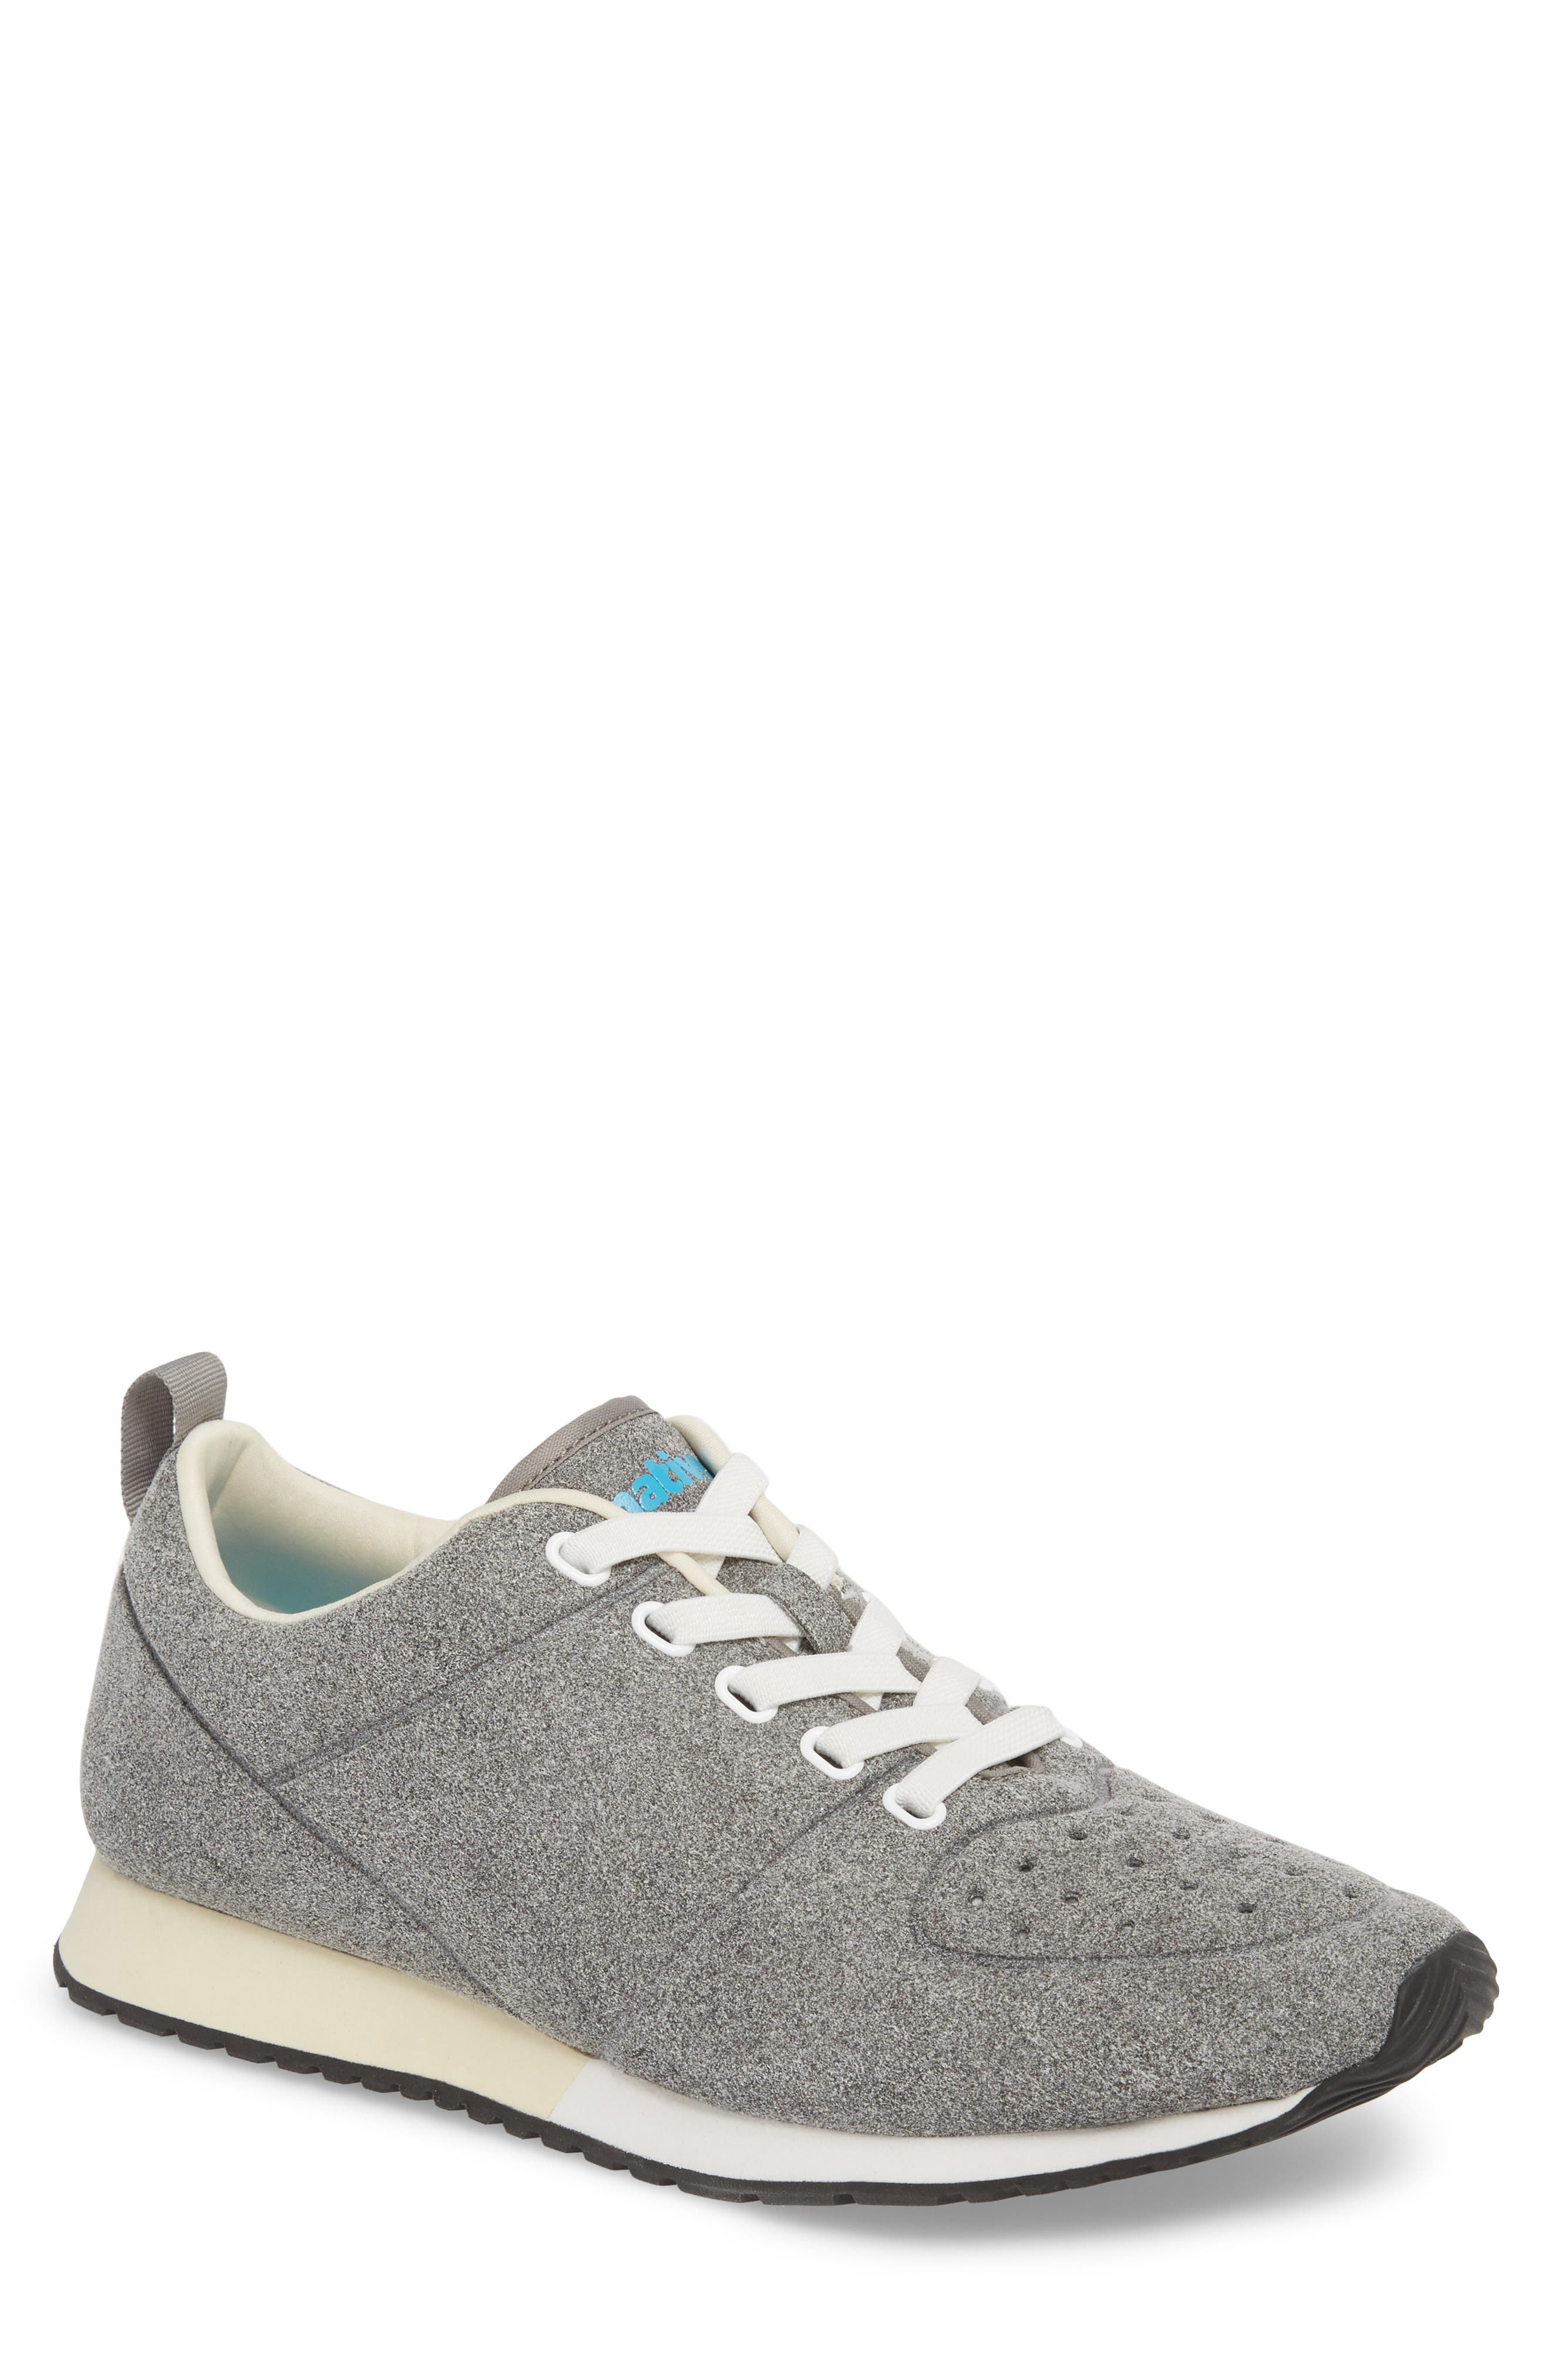 Cornell Perforated Sneaker,                             Main thumbnail 1, color,                             PIGEON GREY/ SHELL WHITE